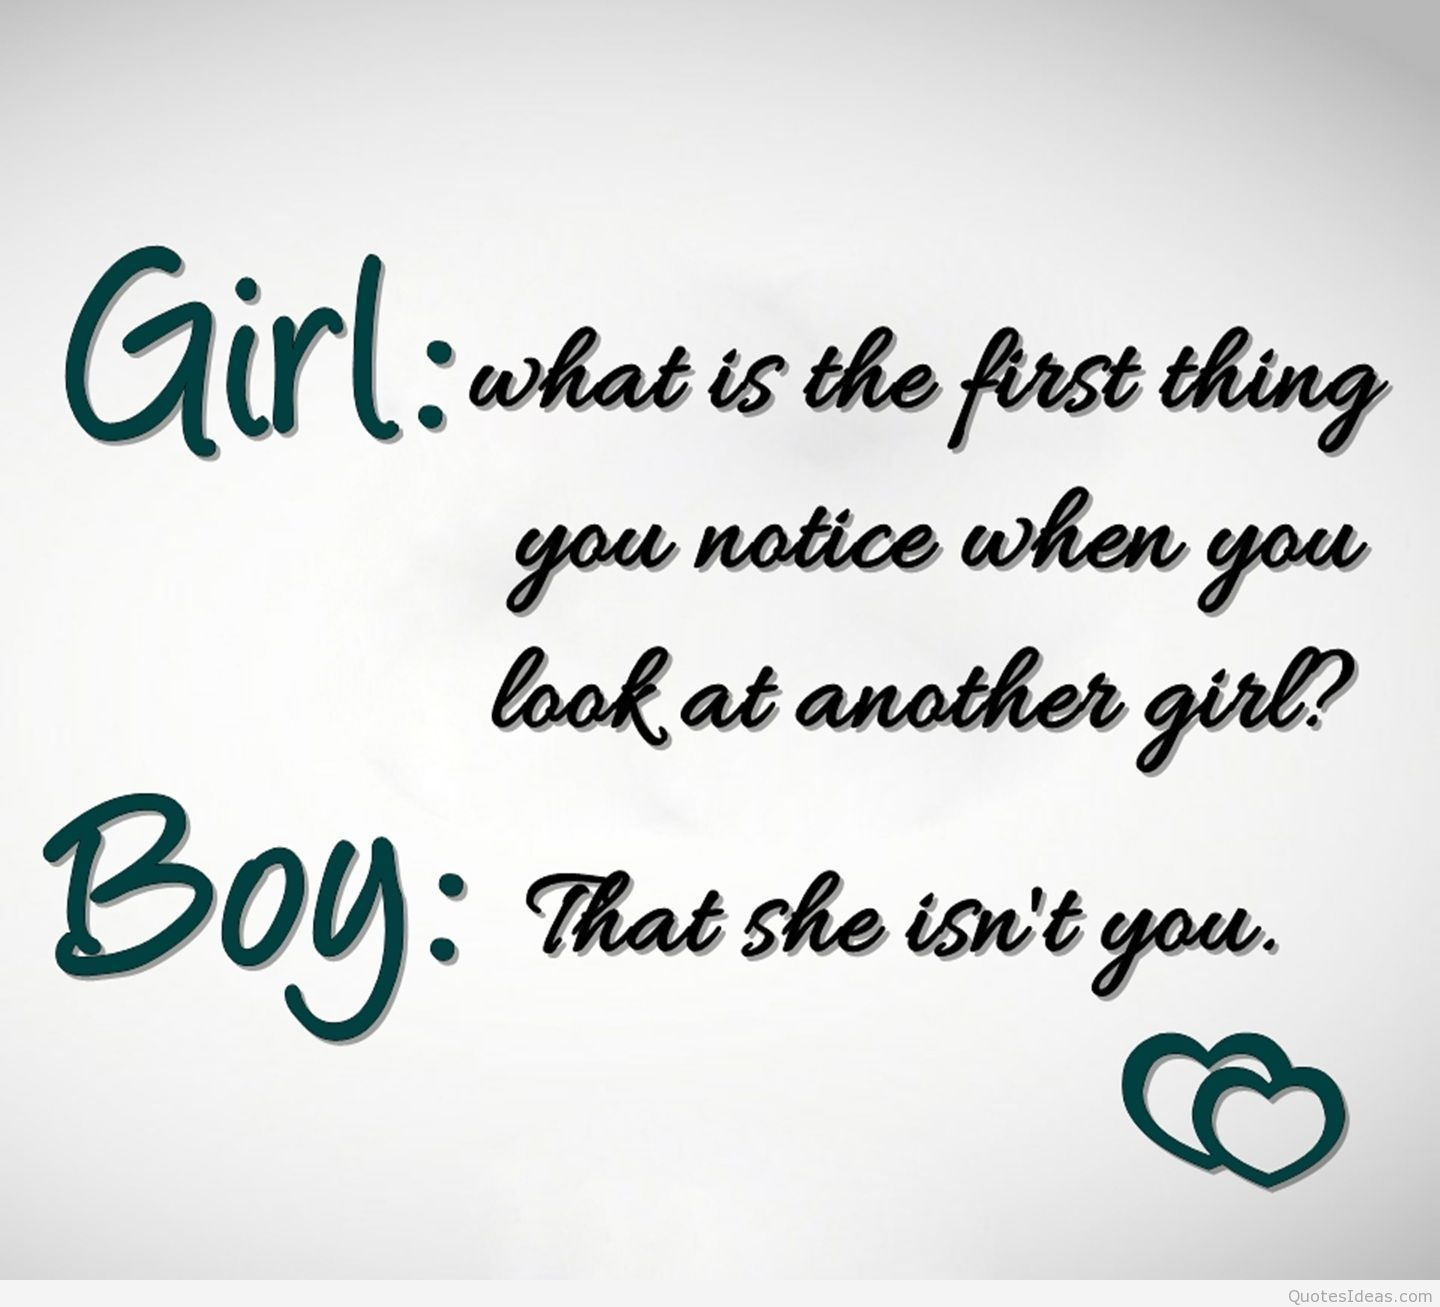 Free Download Best Love Wallpaper With Quotes 640 1136 Wallpaper Love Quotes 55 Wallpapers Adorabl Love Quotes For Her Love Quotes Tumblr Cute Love Quotes